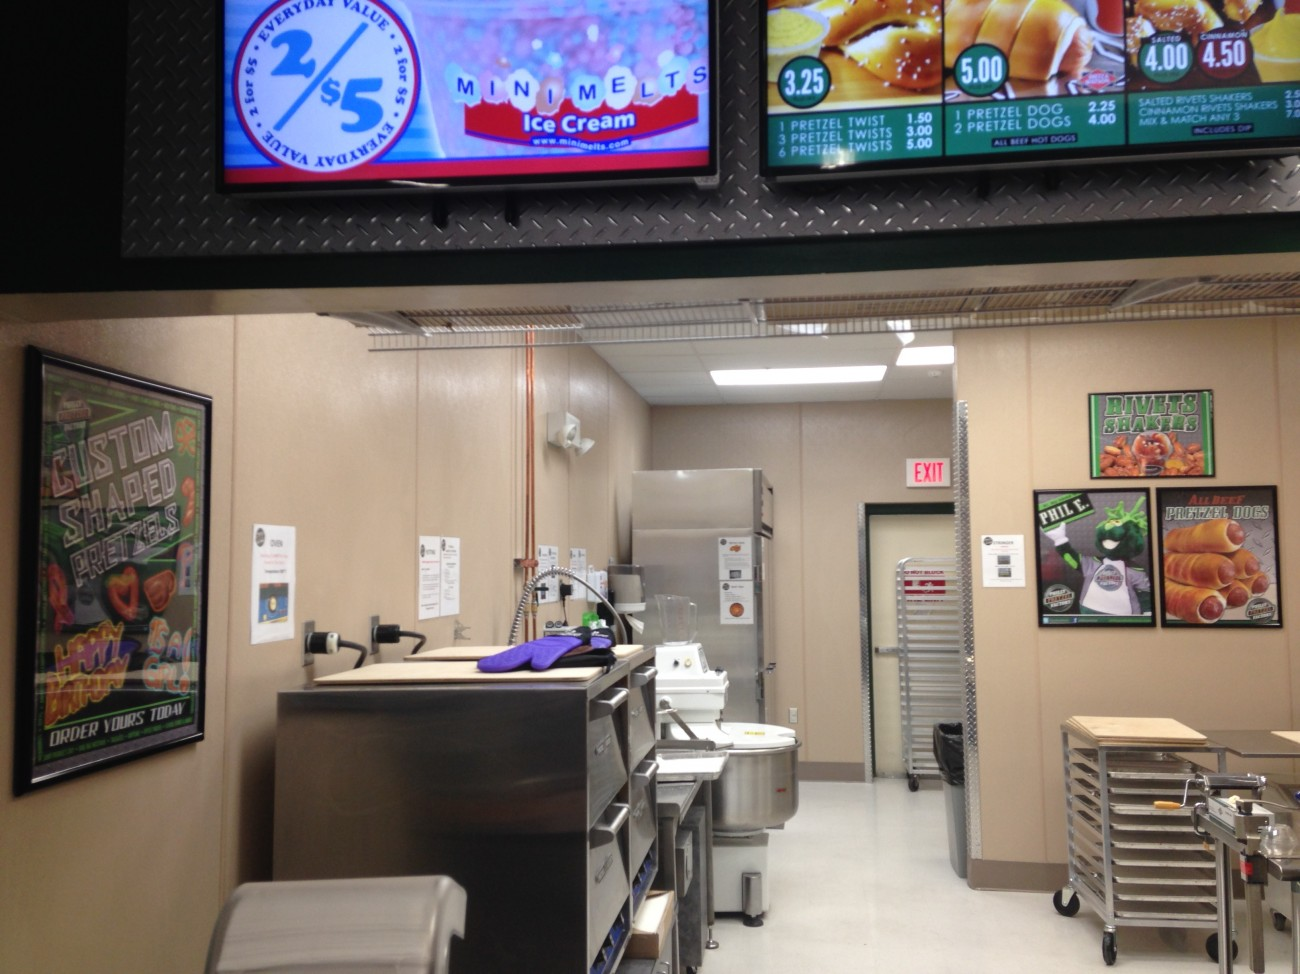 winter haven walmart philly pretzel factory philly pretzel factory